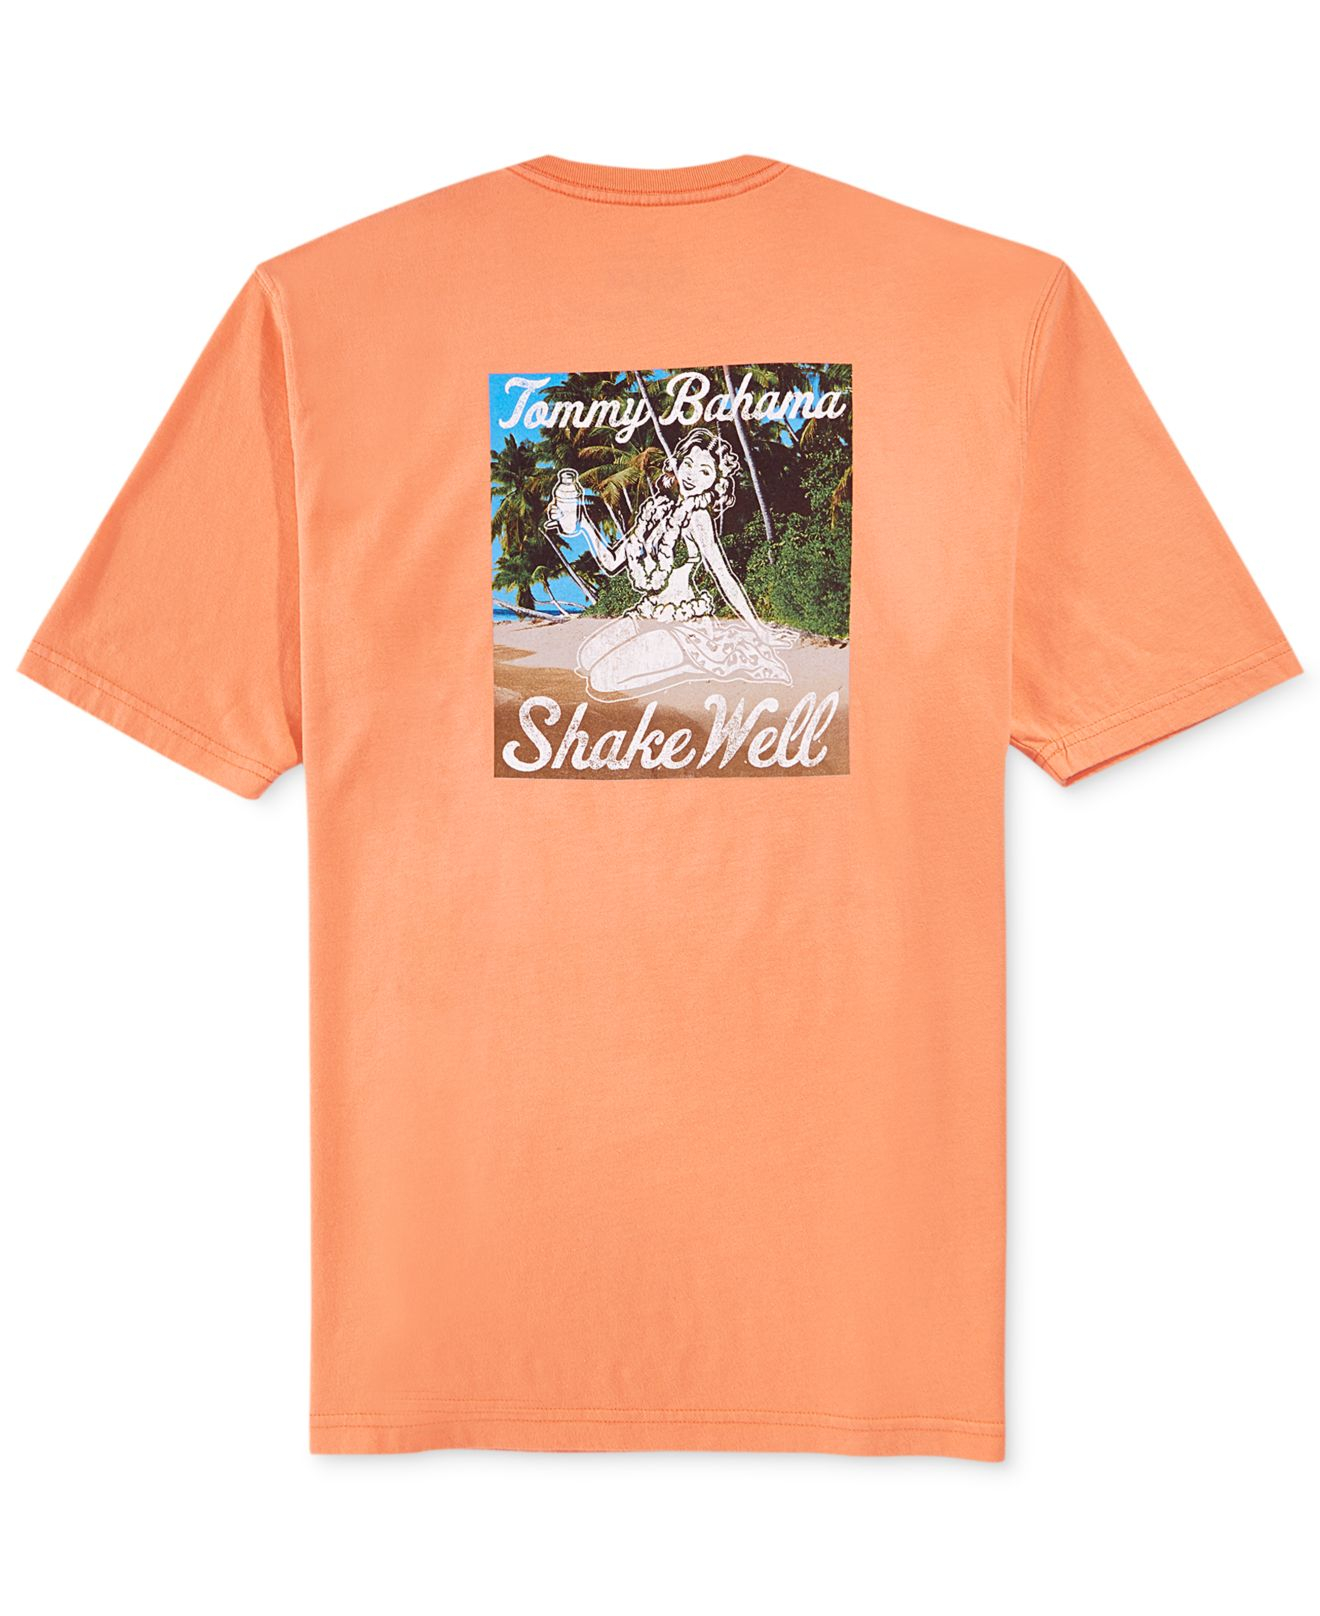 Tommy bahama shake well t shirt in orange for men lyst for Tommy bahama florida shirt